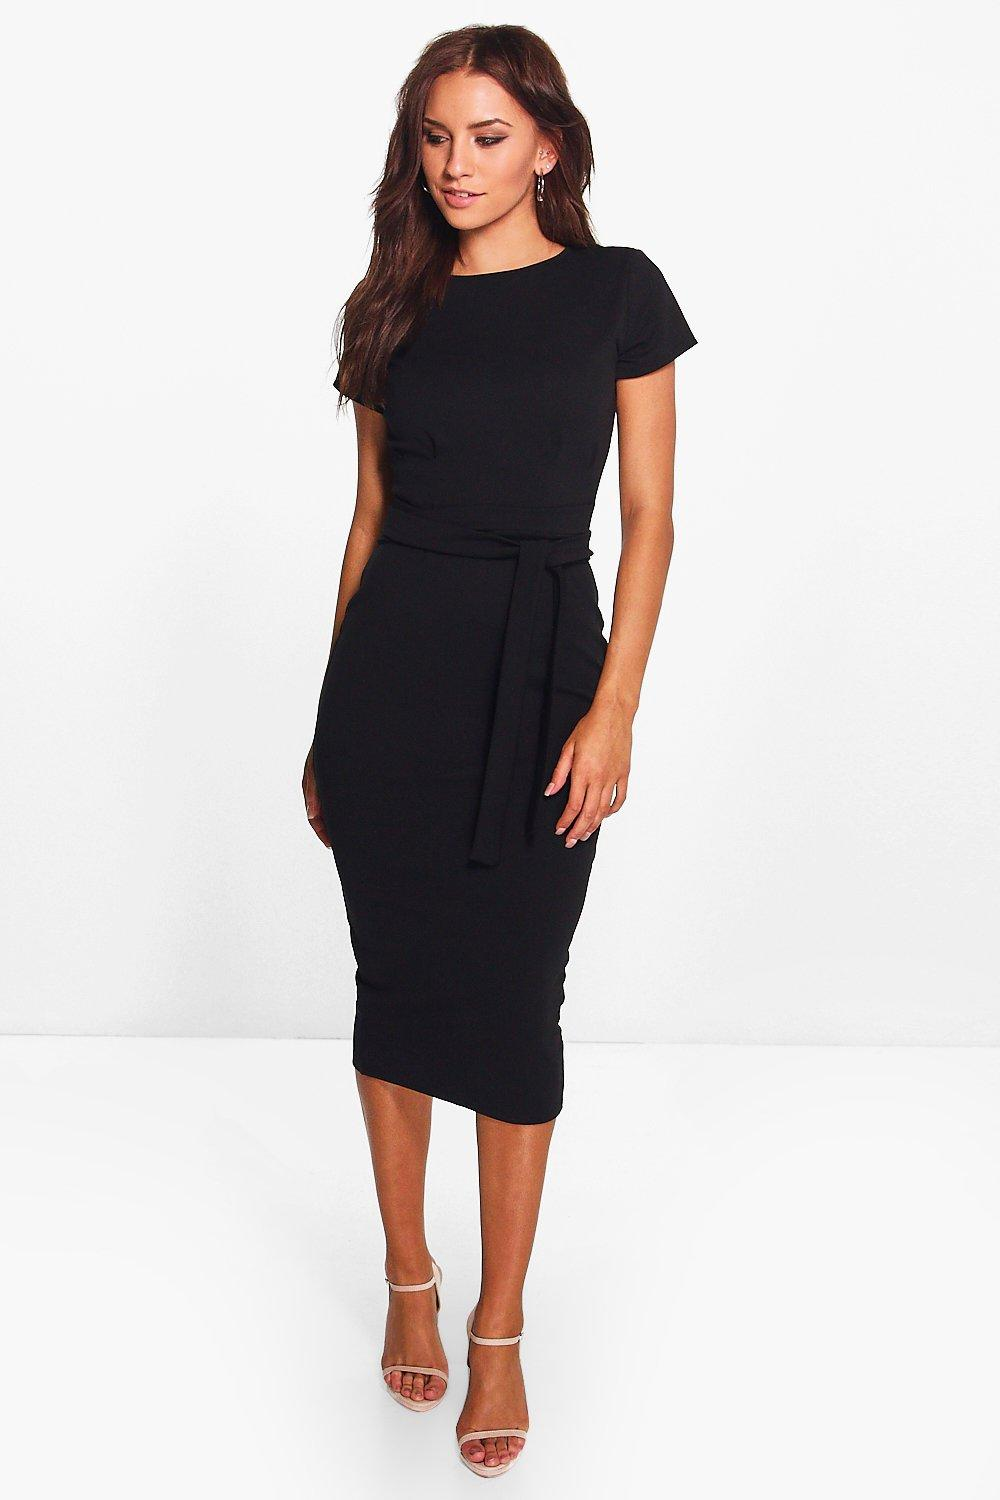 16a92eaf5e0e Womens Black Pleat Front Belted Tailored Midi Dress. Hover to zoom